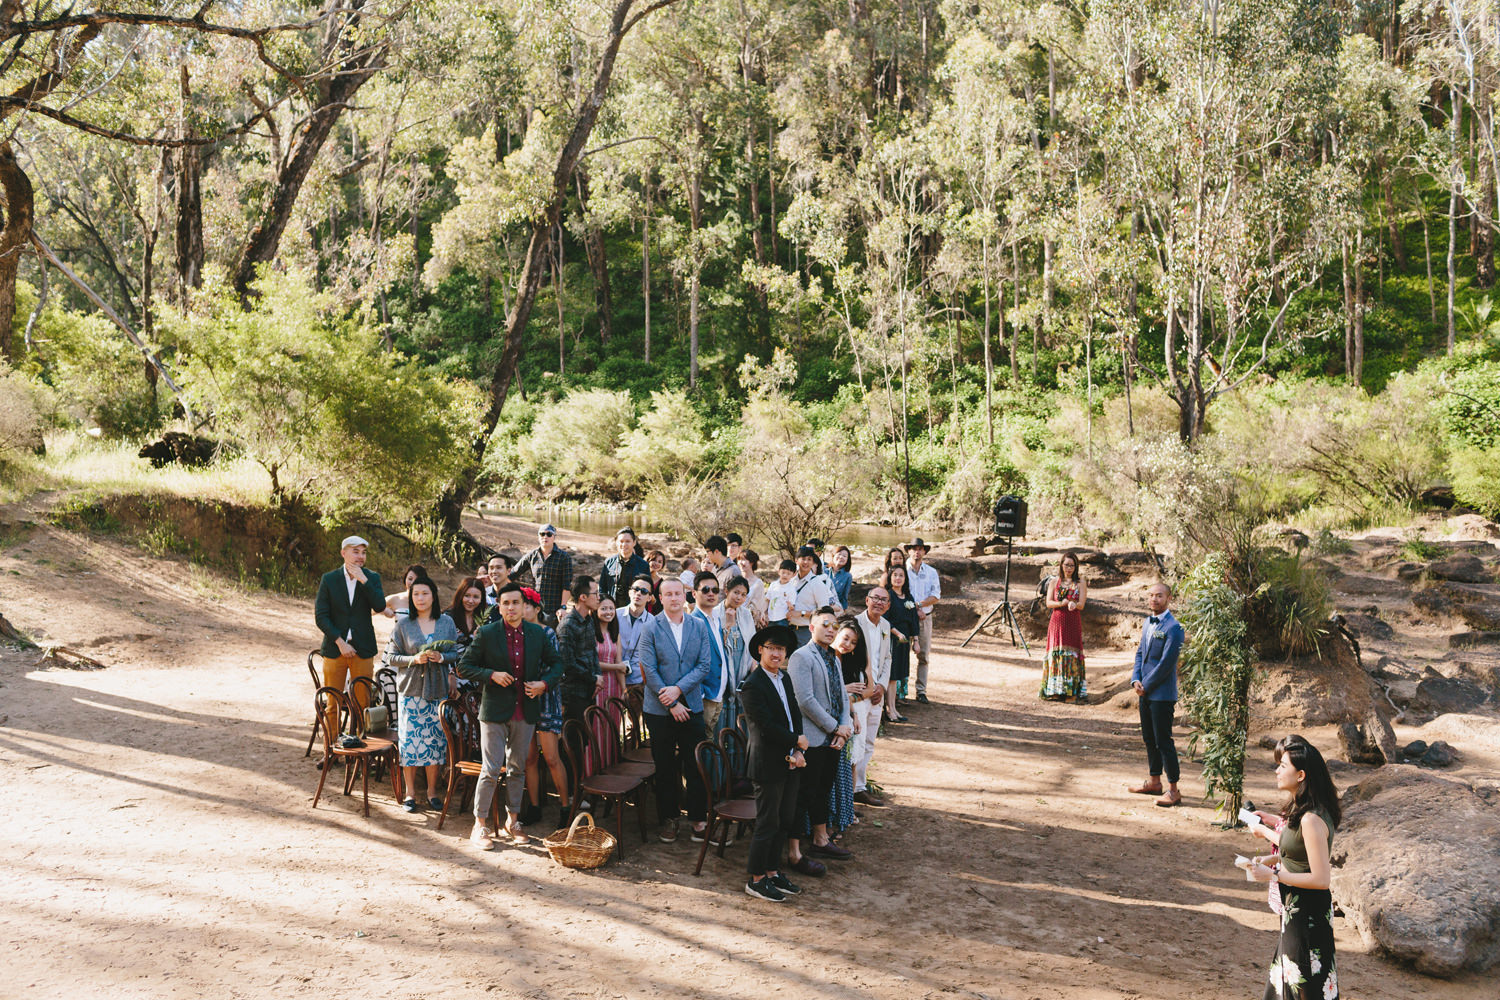 085-Barn_Wedding_Australia_Sam_Ting.jpg